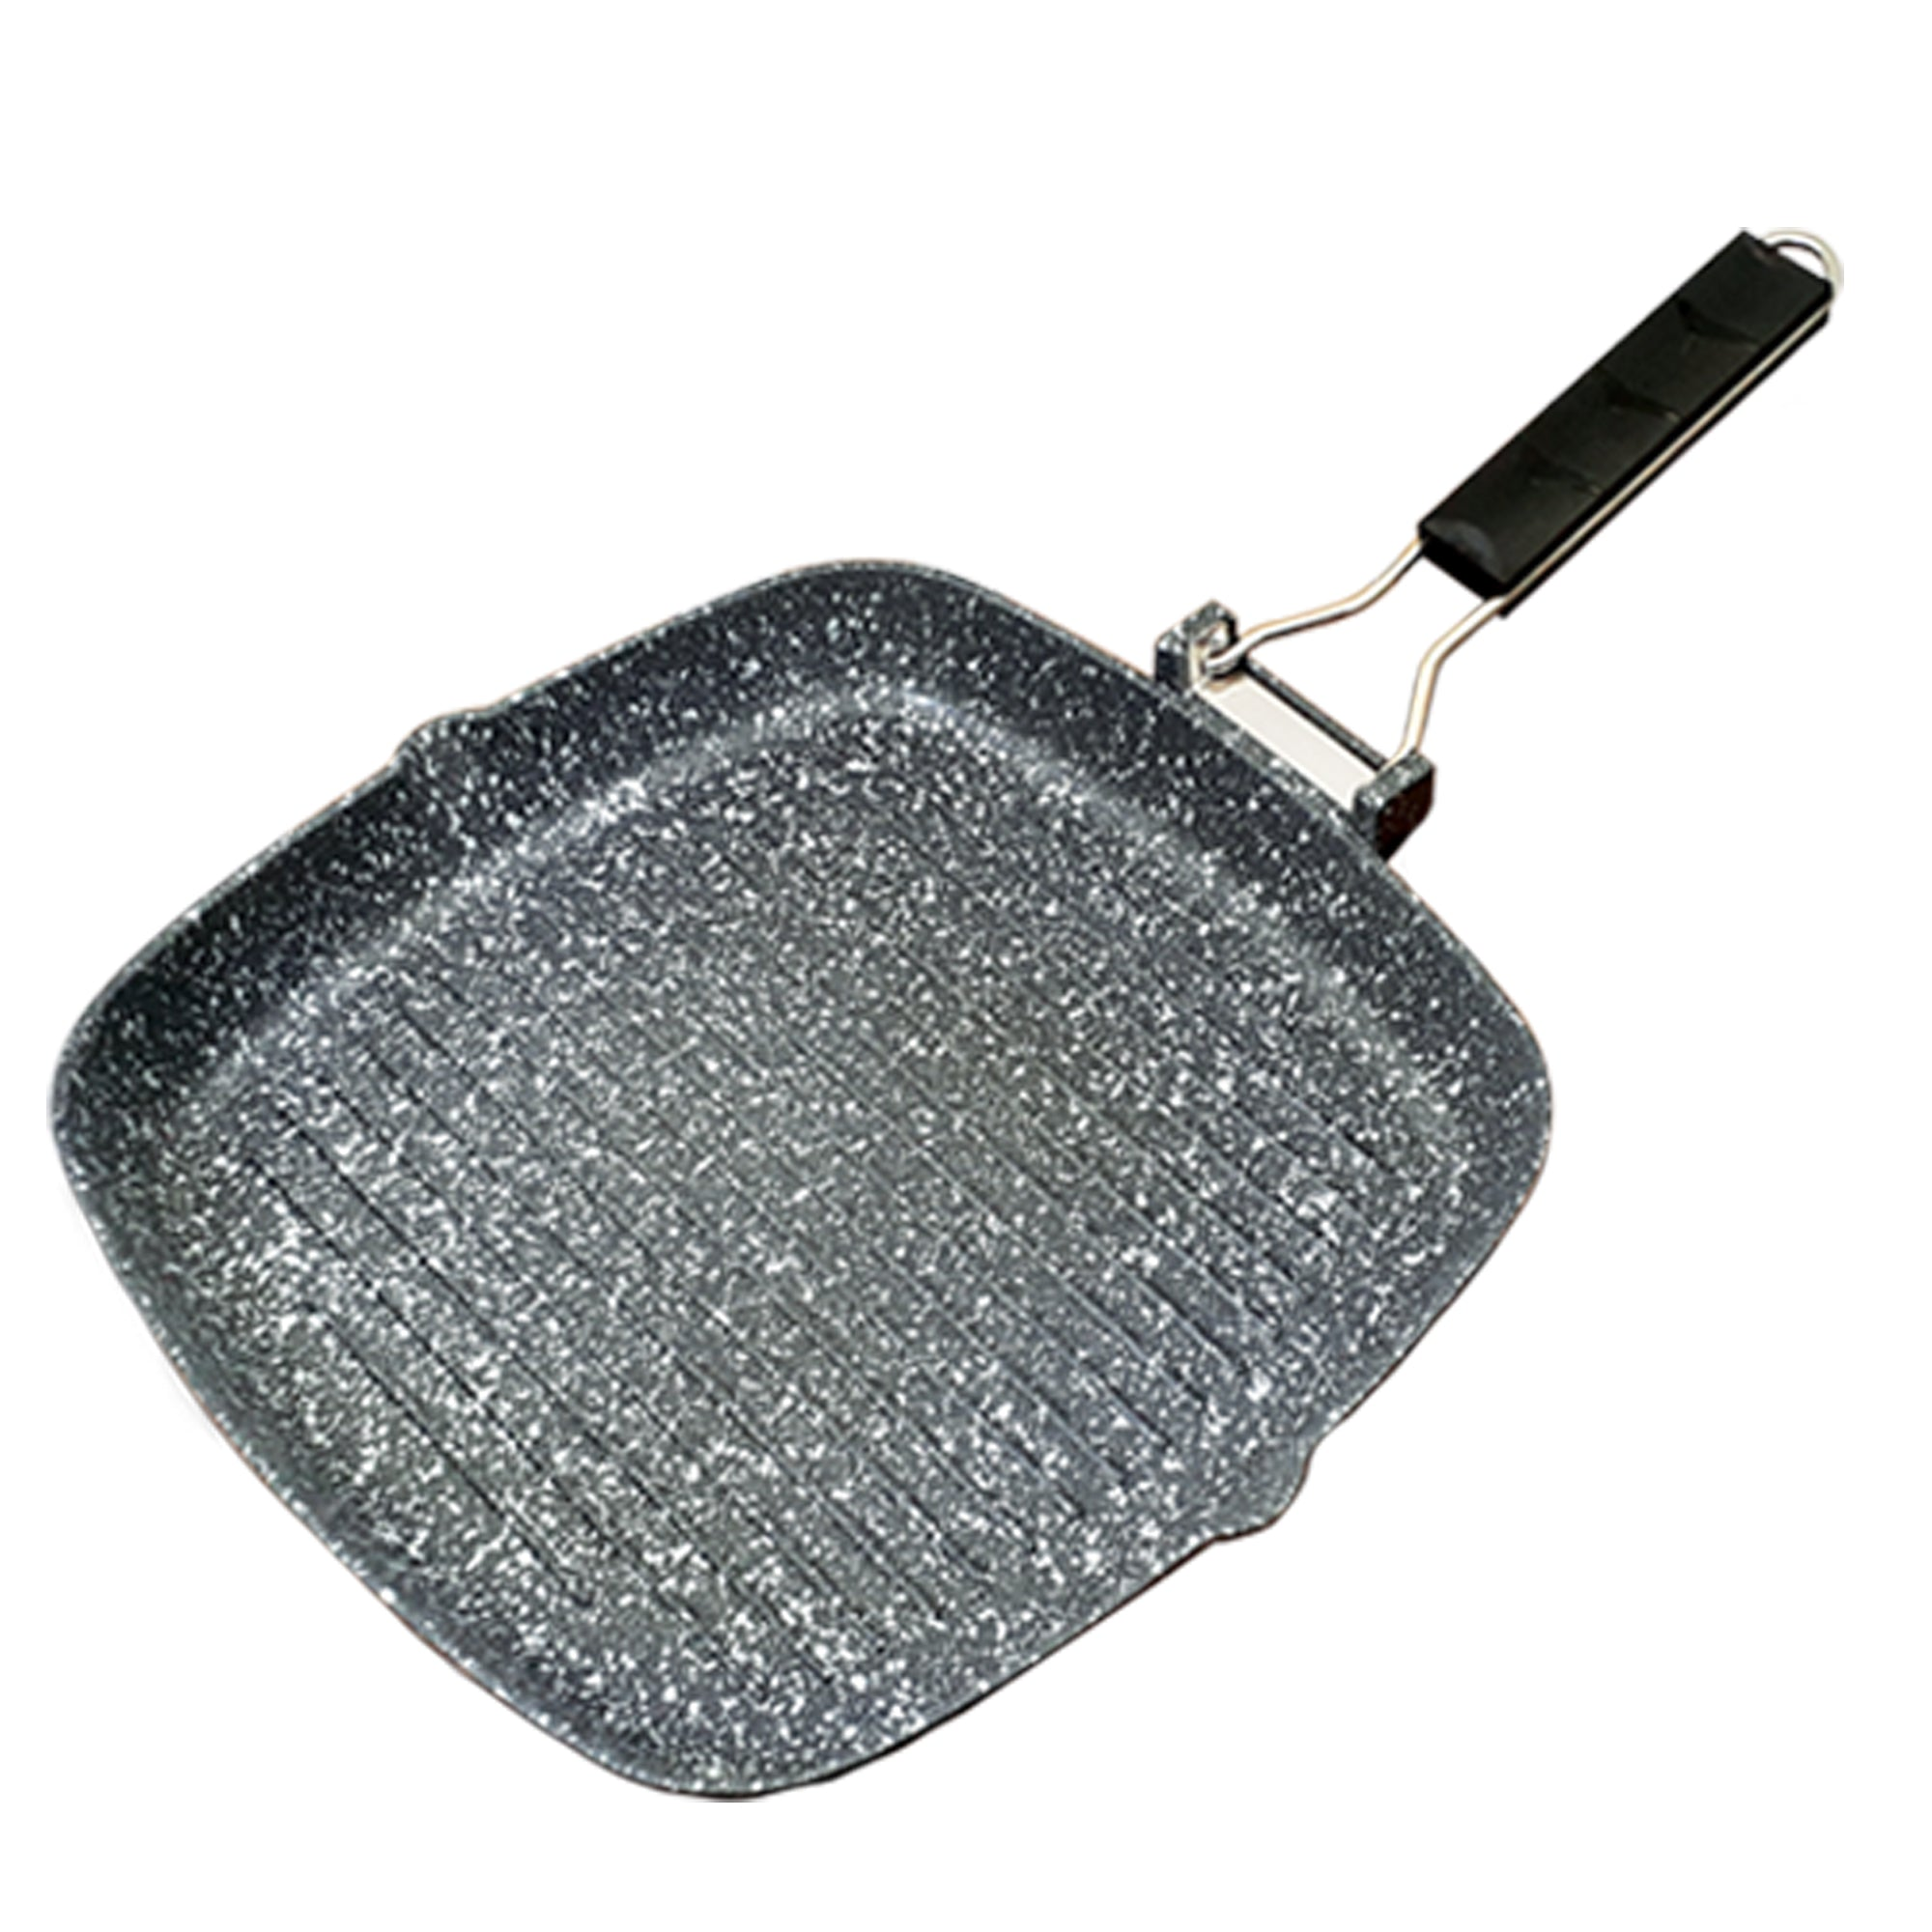 Camouflage - Foldable Handle Square Pan